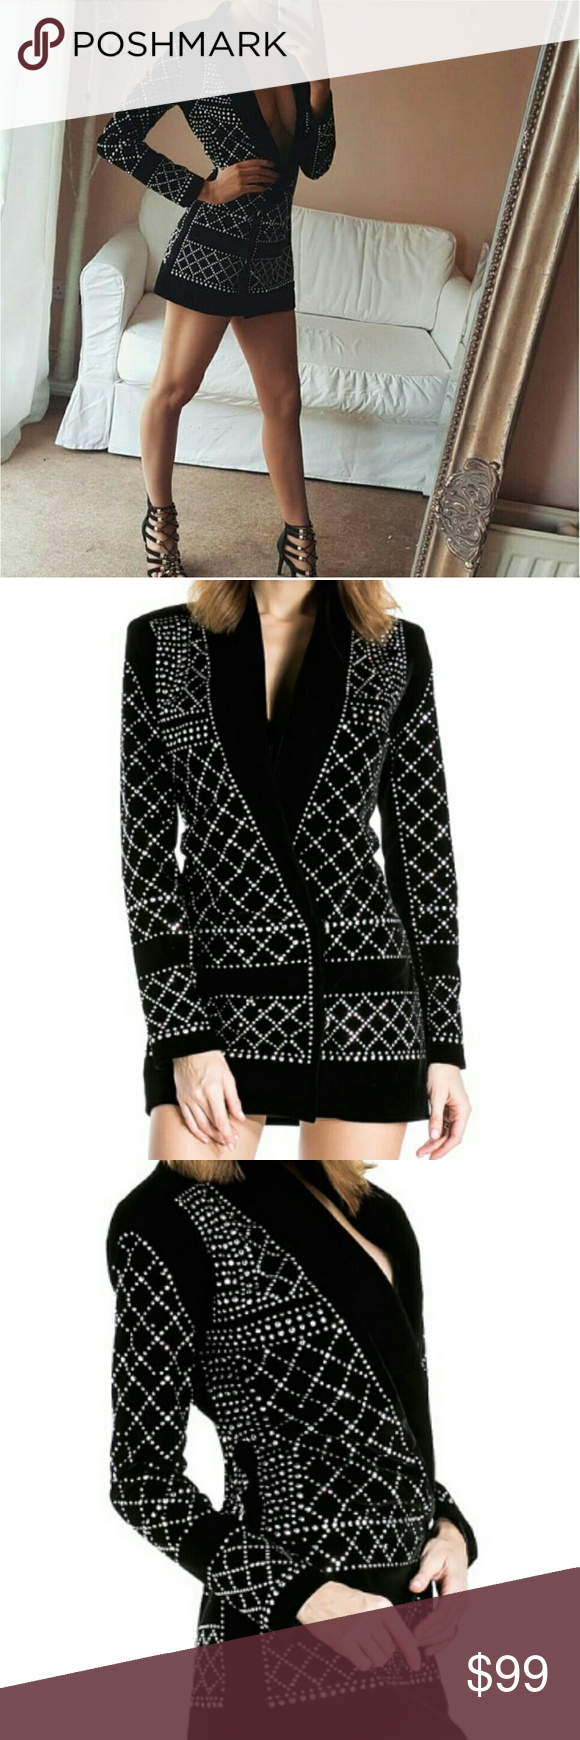 4483c5880783 Studded rhinestone blazer dress Black velvet studded blazer dress. So  gorgeous! Ordered from a site that didn't take return and fit wasn't quite  right.